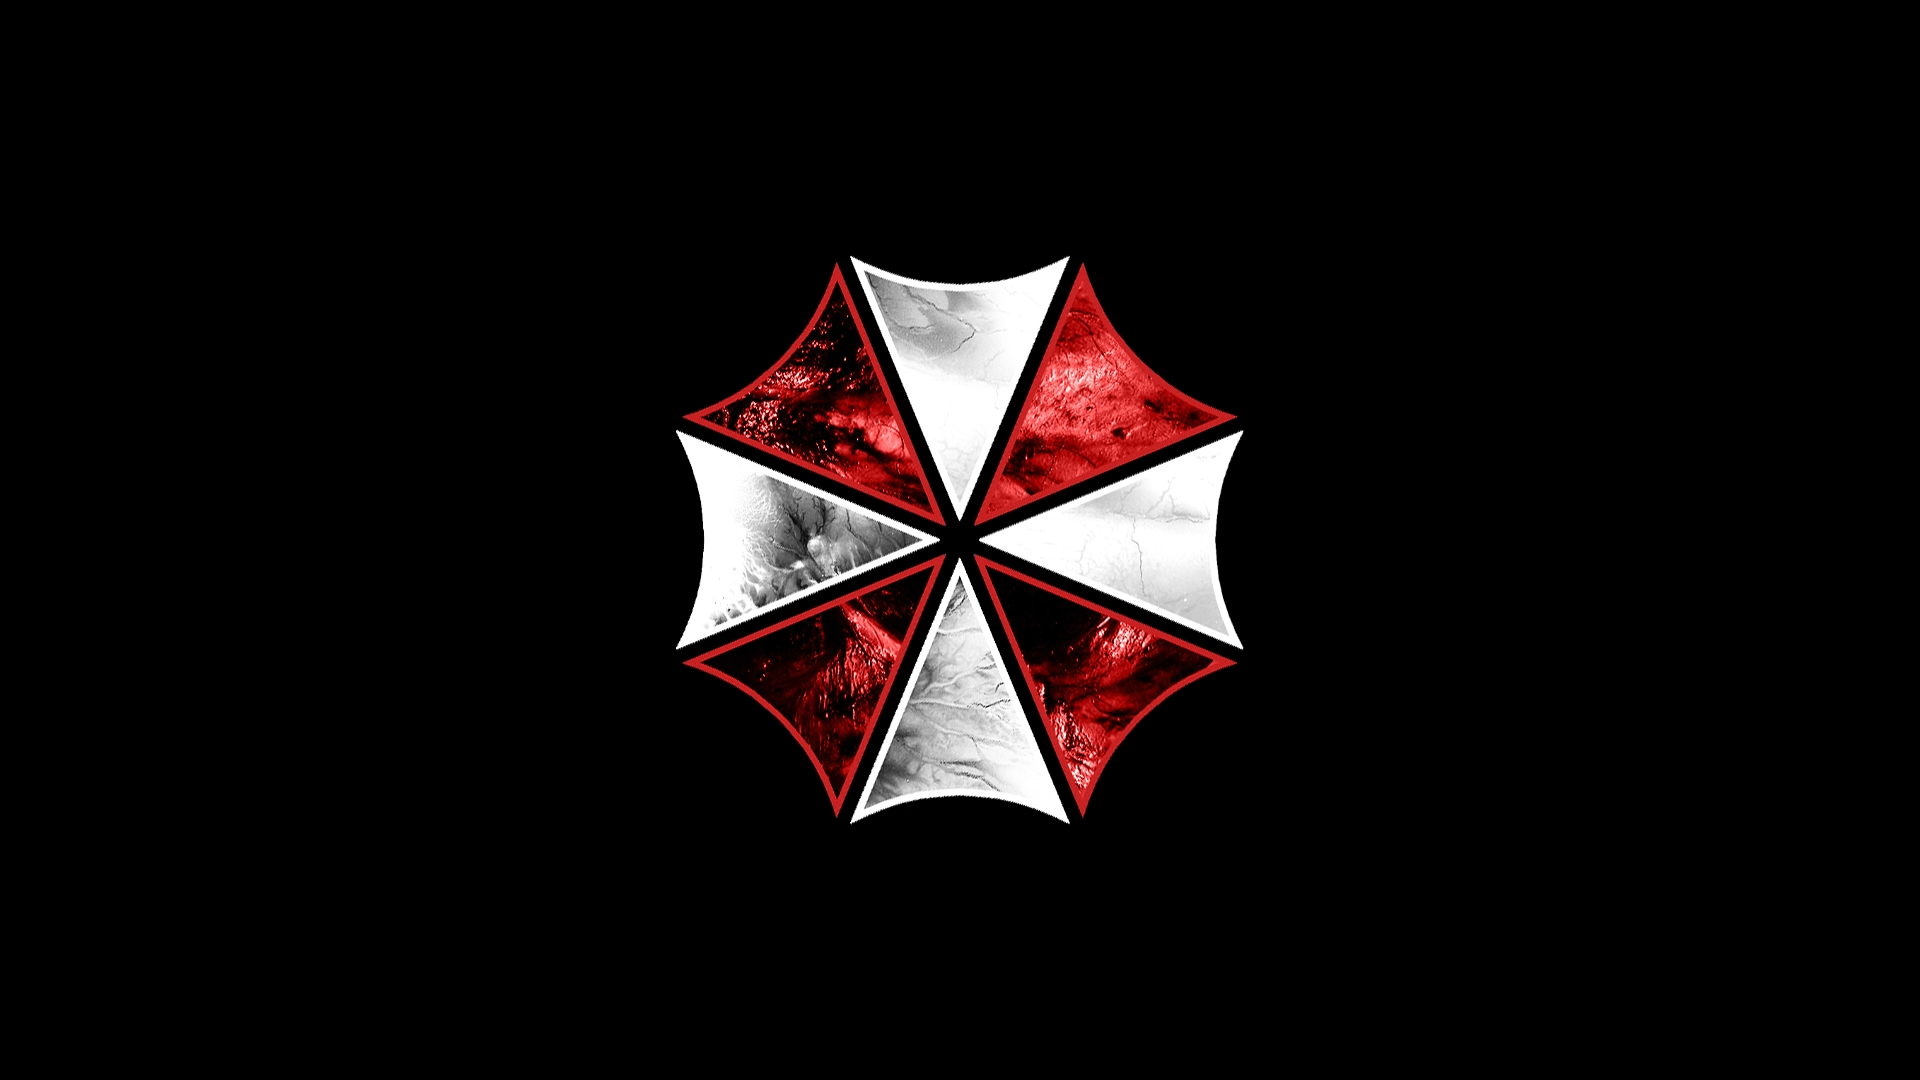 video games, movies, resident evil, umbrella corp., logos, simple